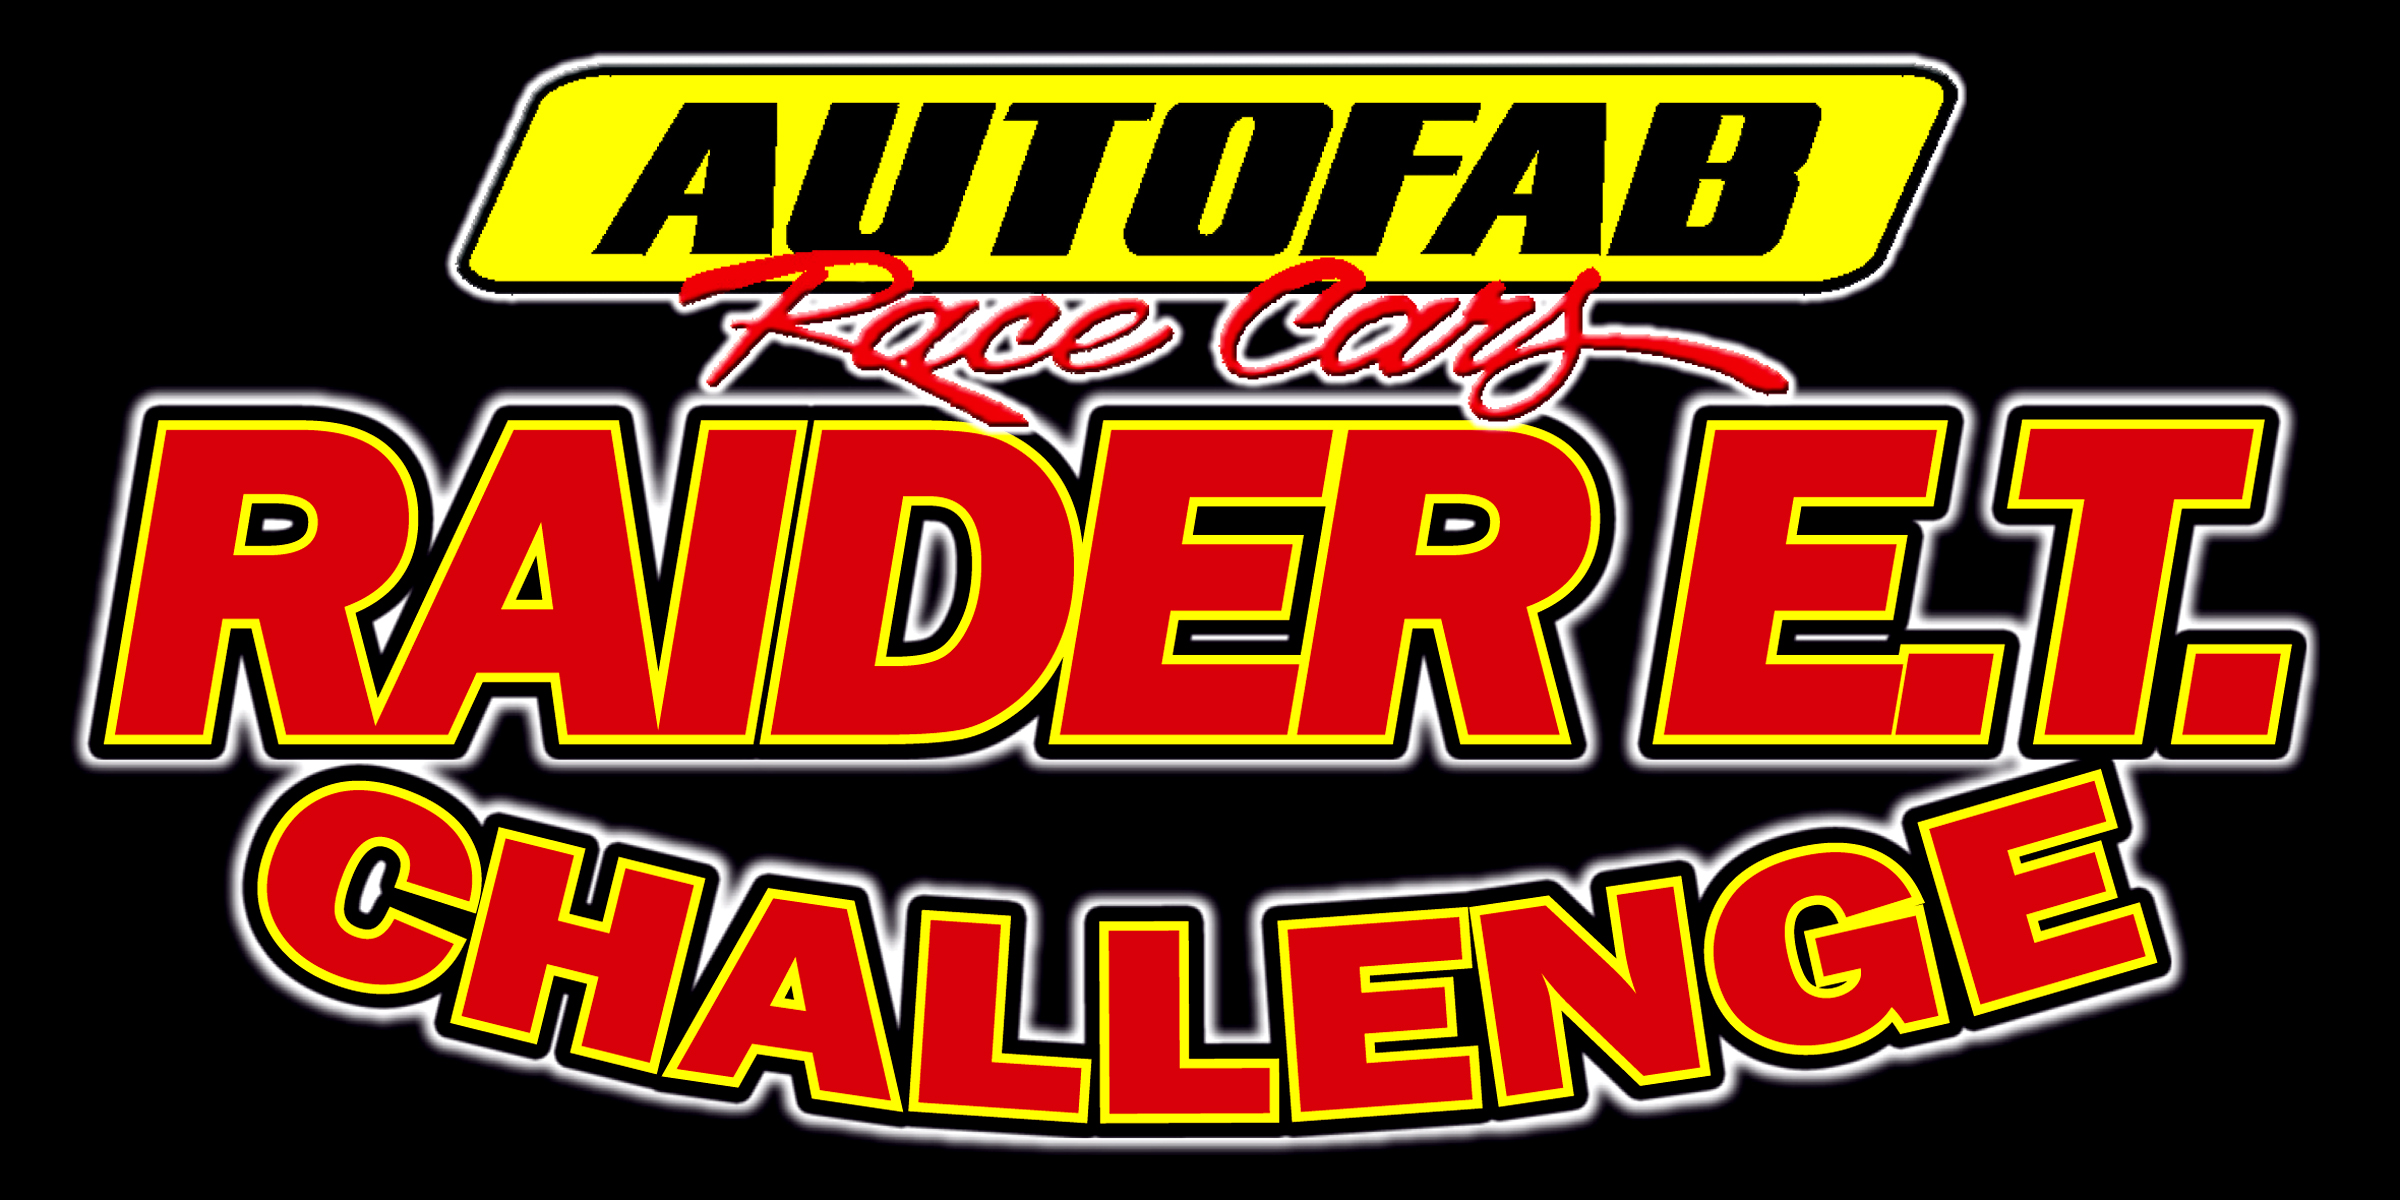 Autofab Race Cars Raider ET Challenge Rescheduled to Oct 11-12 at MIR thumbnail